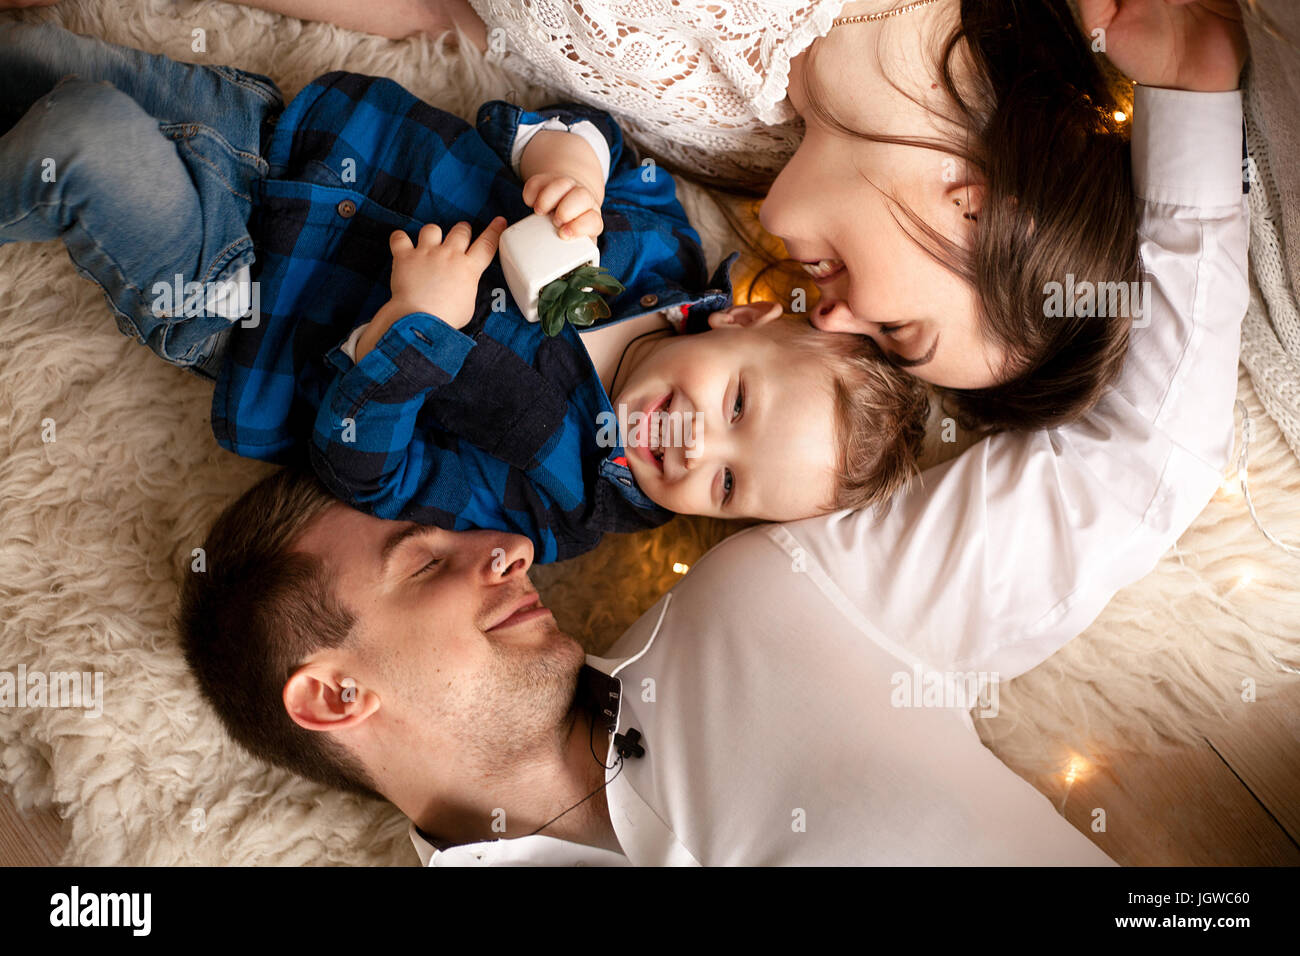 Happy young family lie on bed together. They laugh fun. Top view. Closeup. Stock Photo